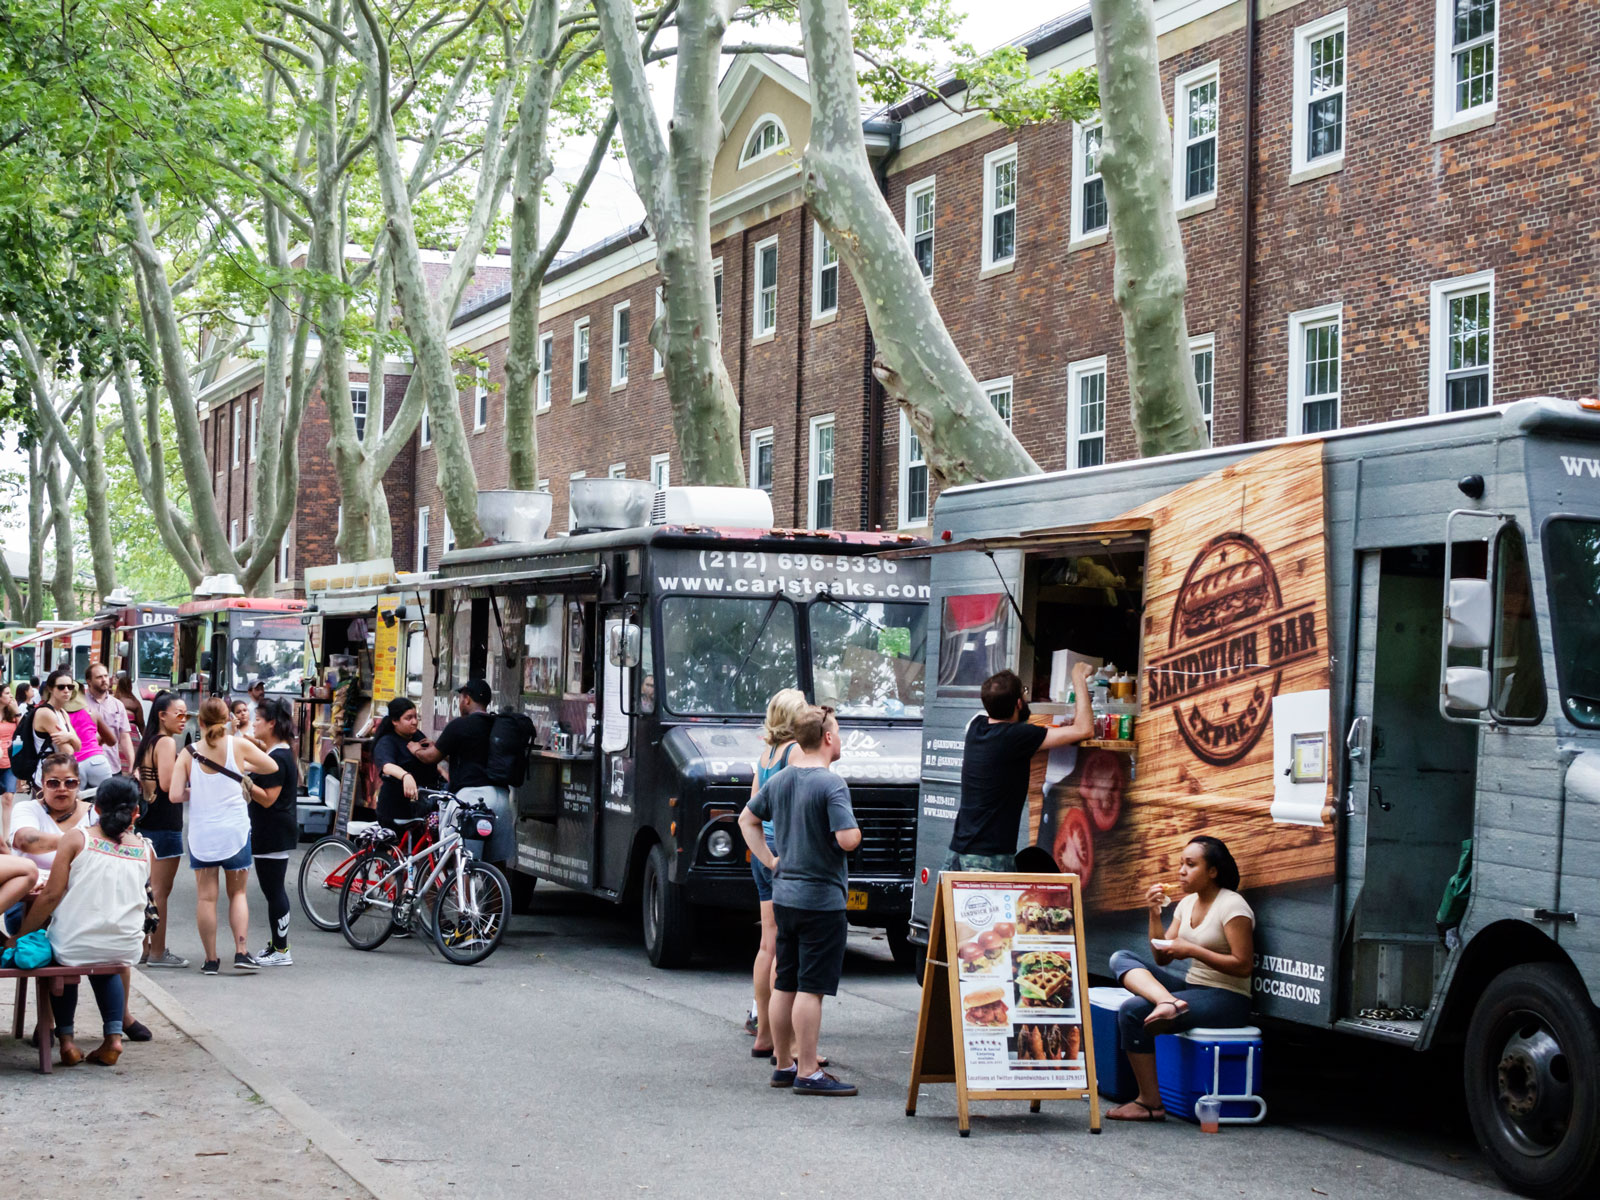 The Best and Worst Cities for Operating a Food Truck